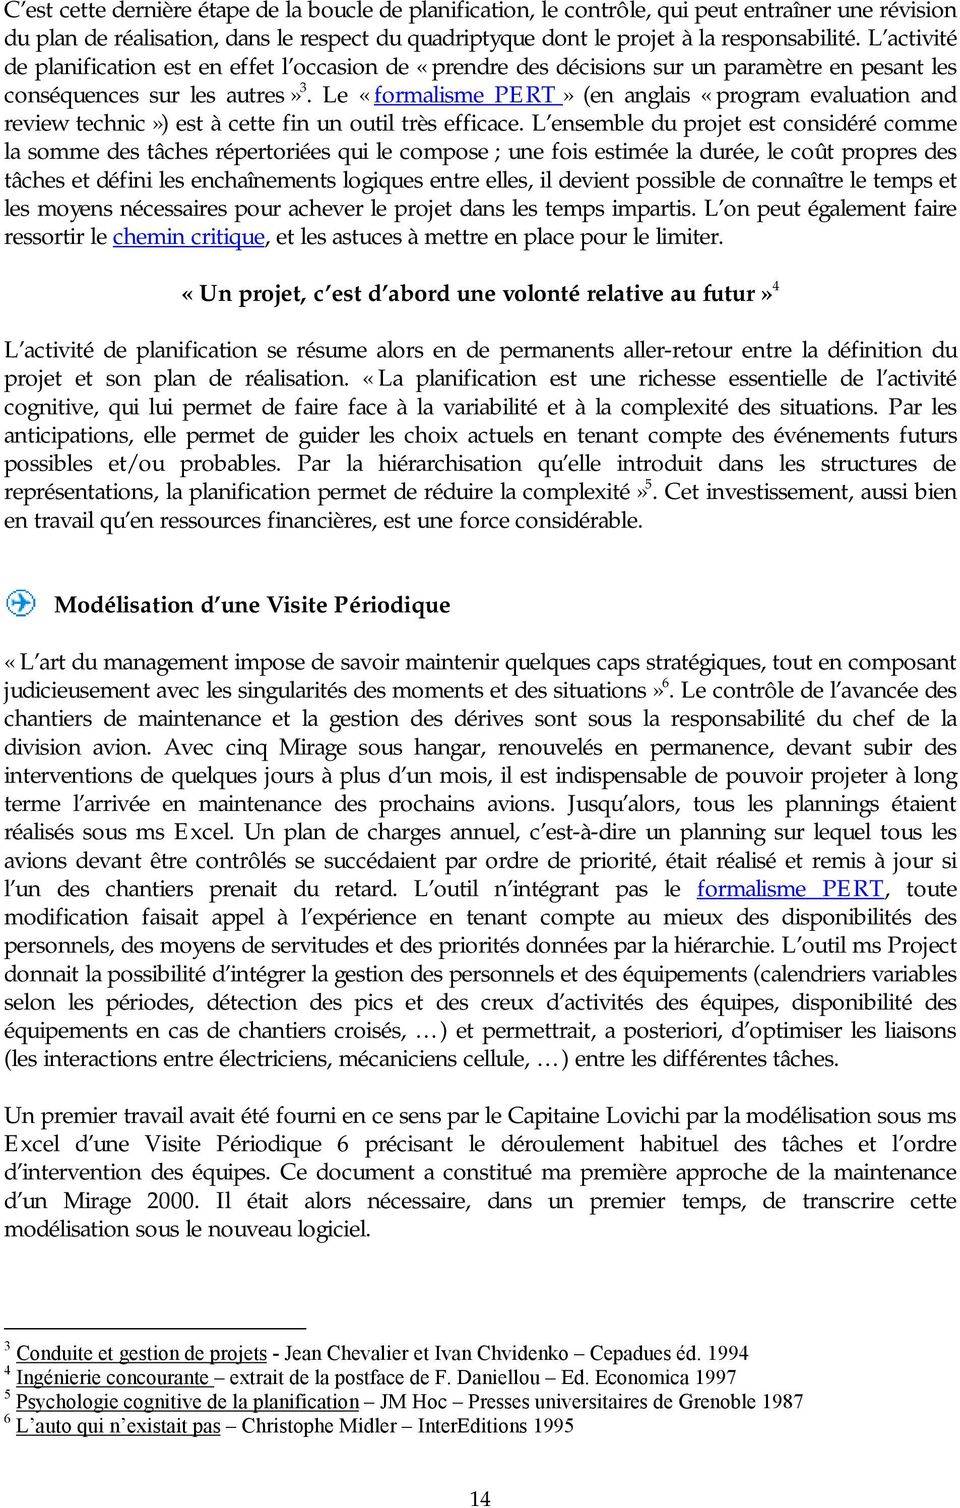 Le «formalisme PERT» (en anglais «program evaluation and review technic») est à cette fin un outil très efficace.